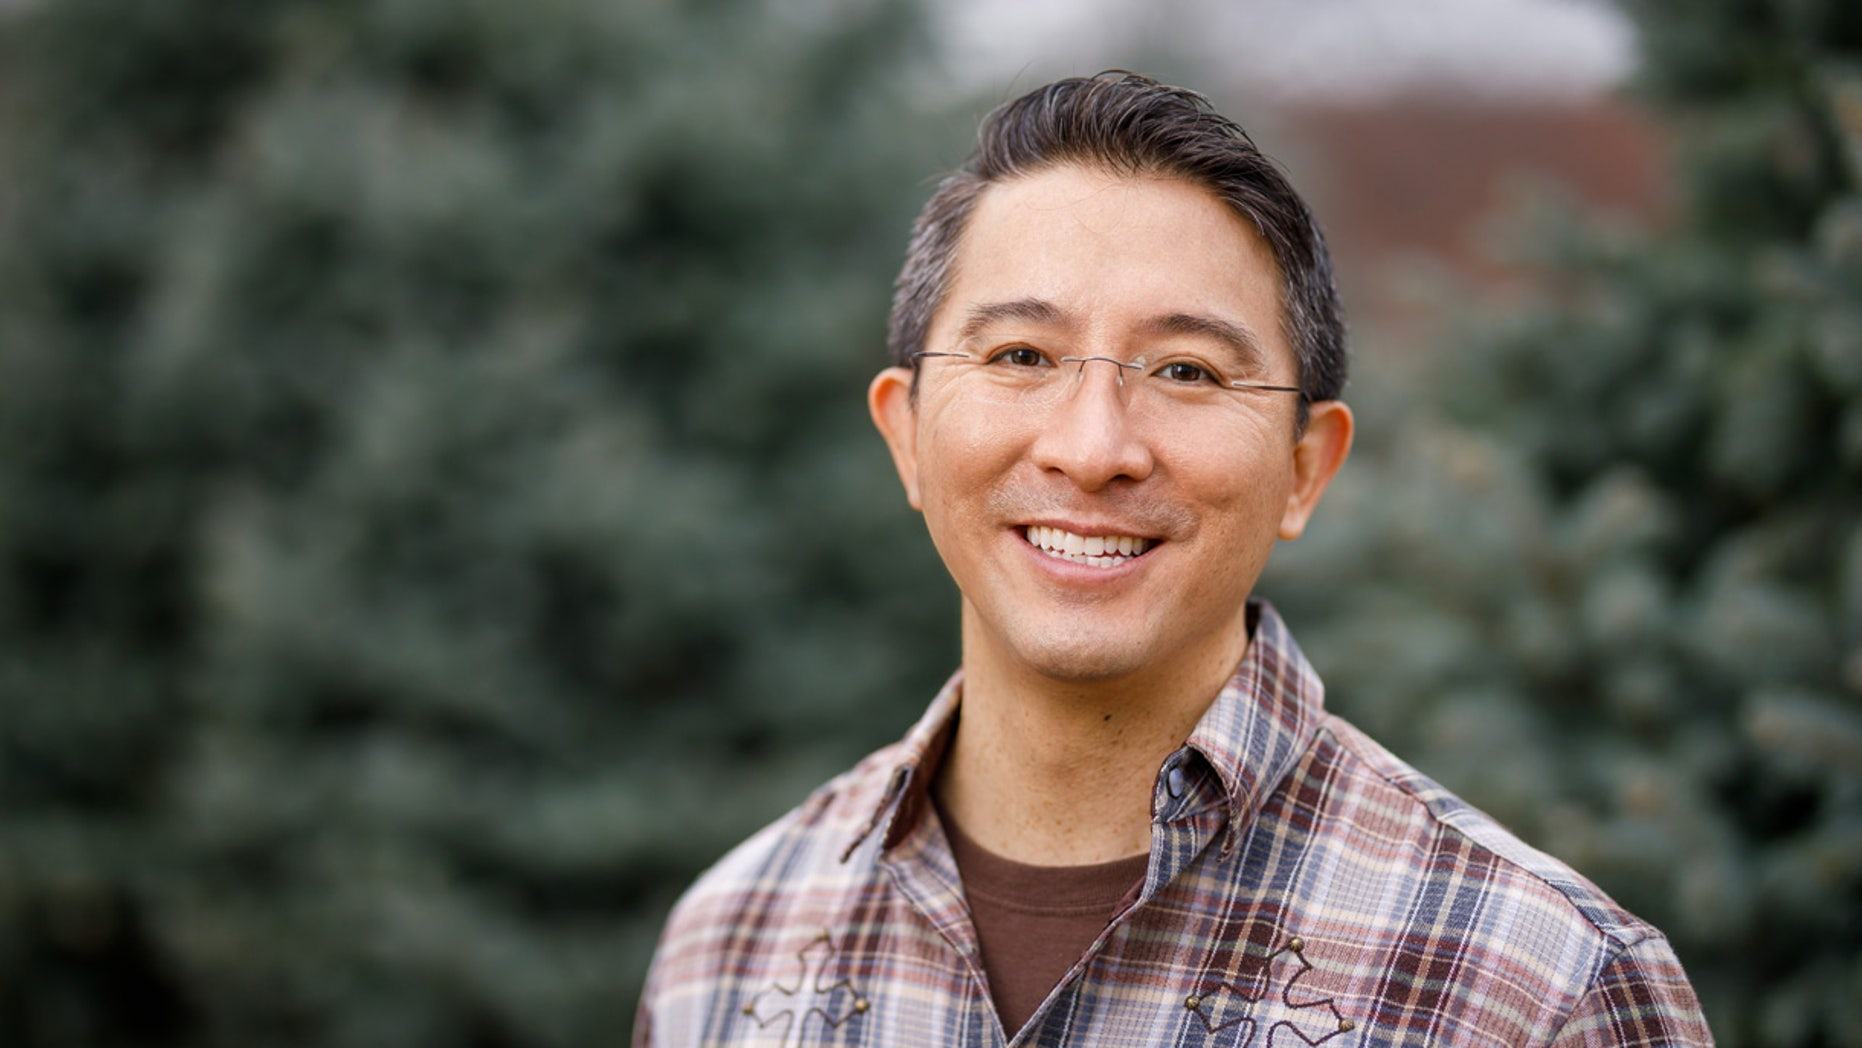 """Christopher Yuan, professor-at-large in Biblical Studies at Moody Bible Institute, became a Christian in prison. Yuan speaks at universities, churches, and conferences all around the world about his unlikely journey to Jesus and """"holy sexuality."""""""